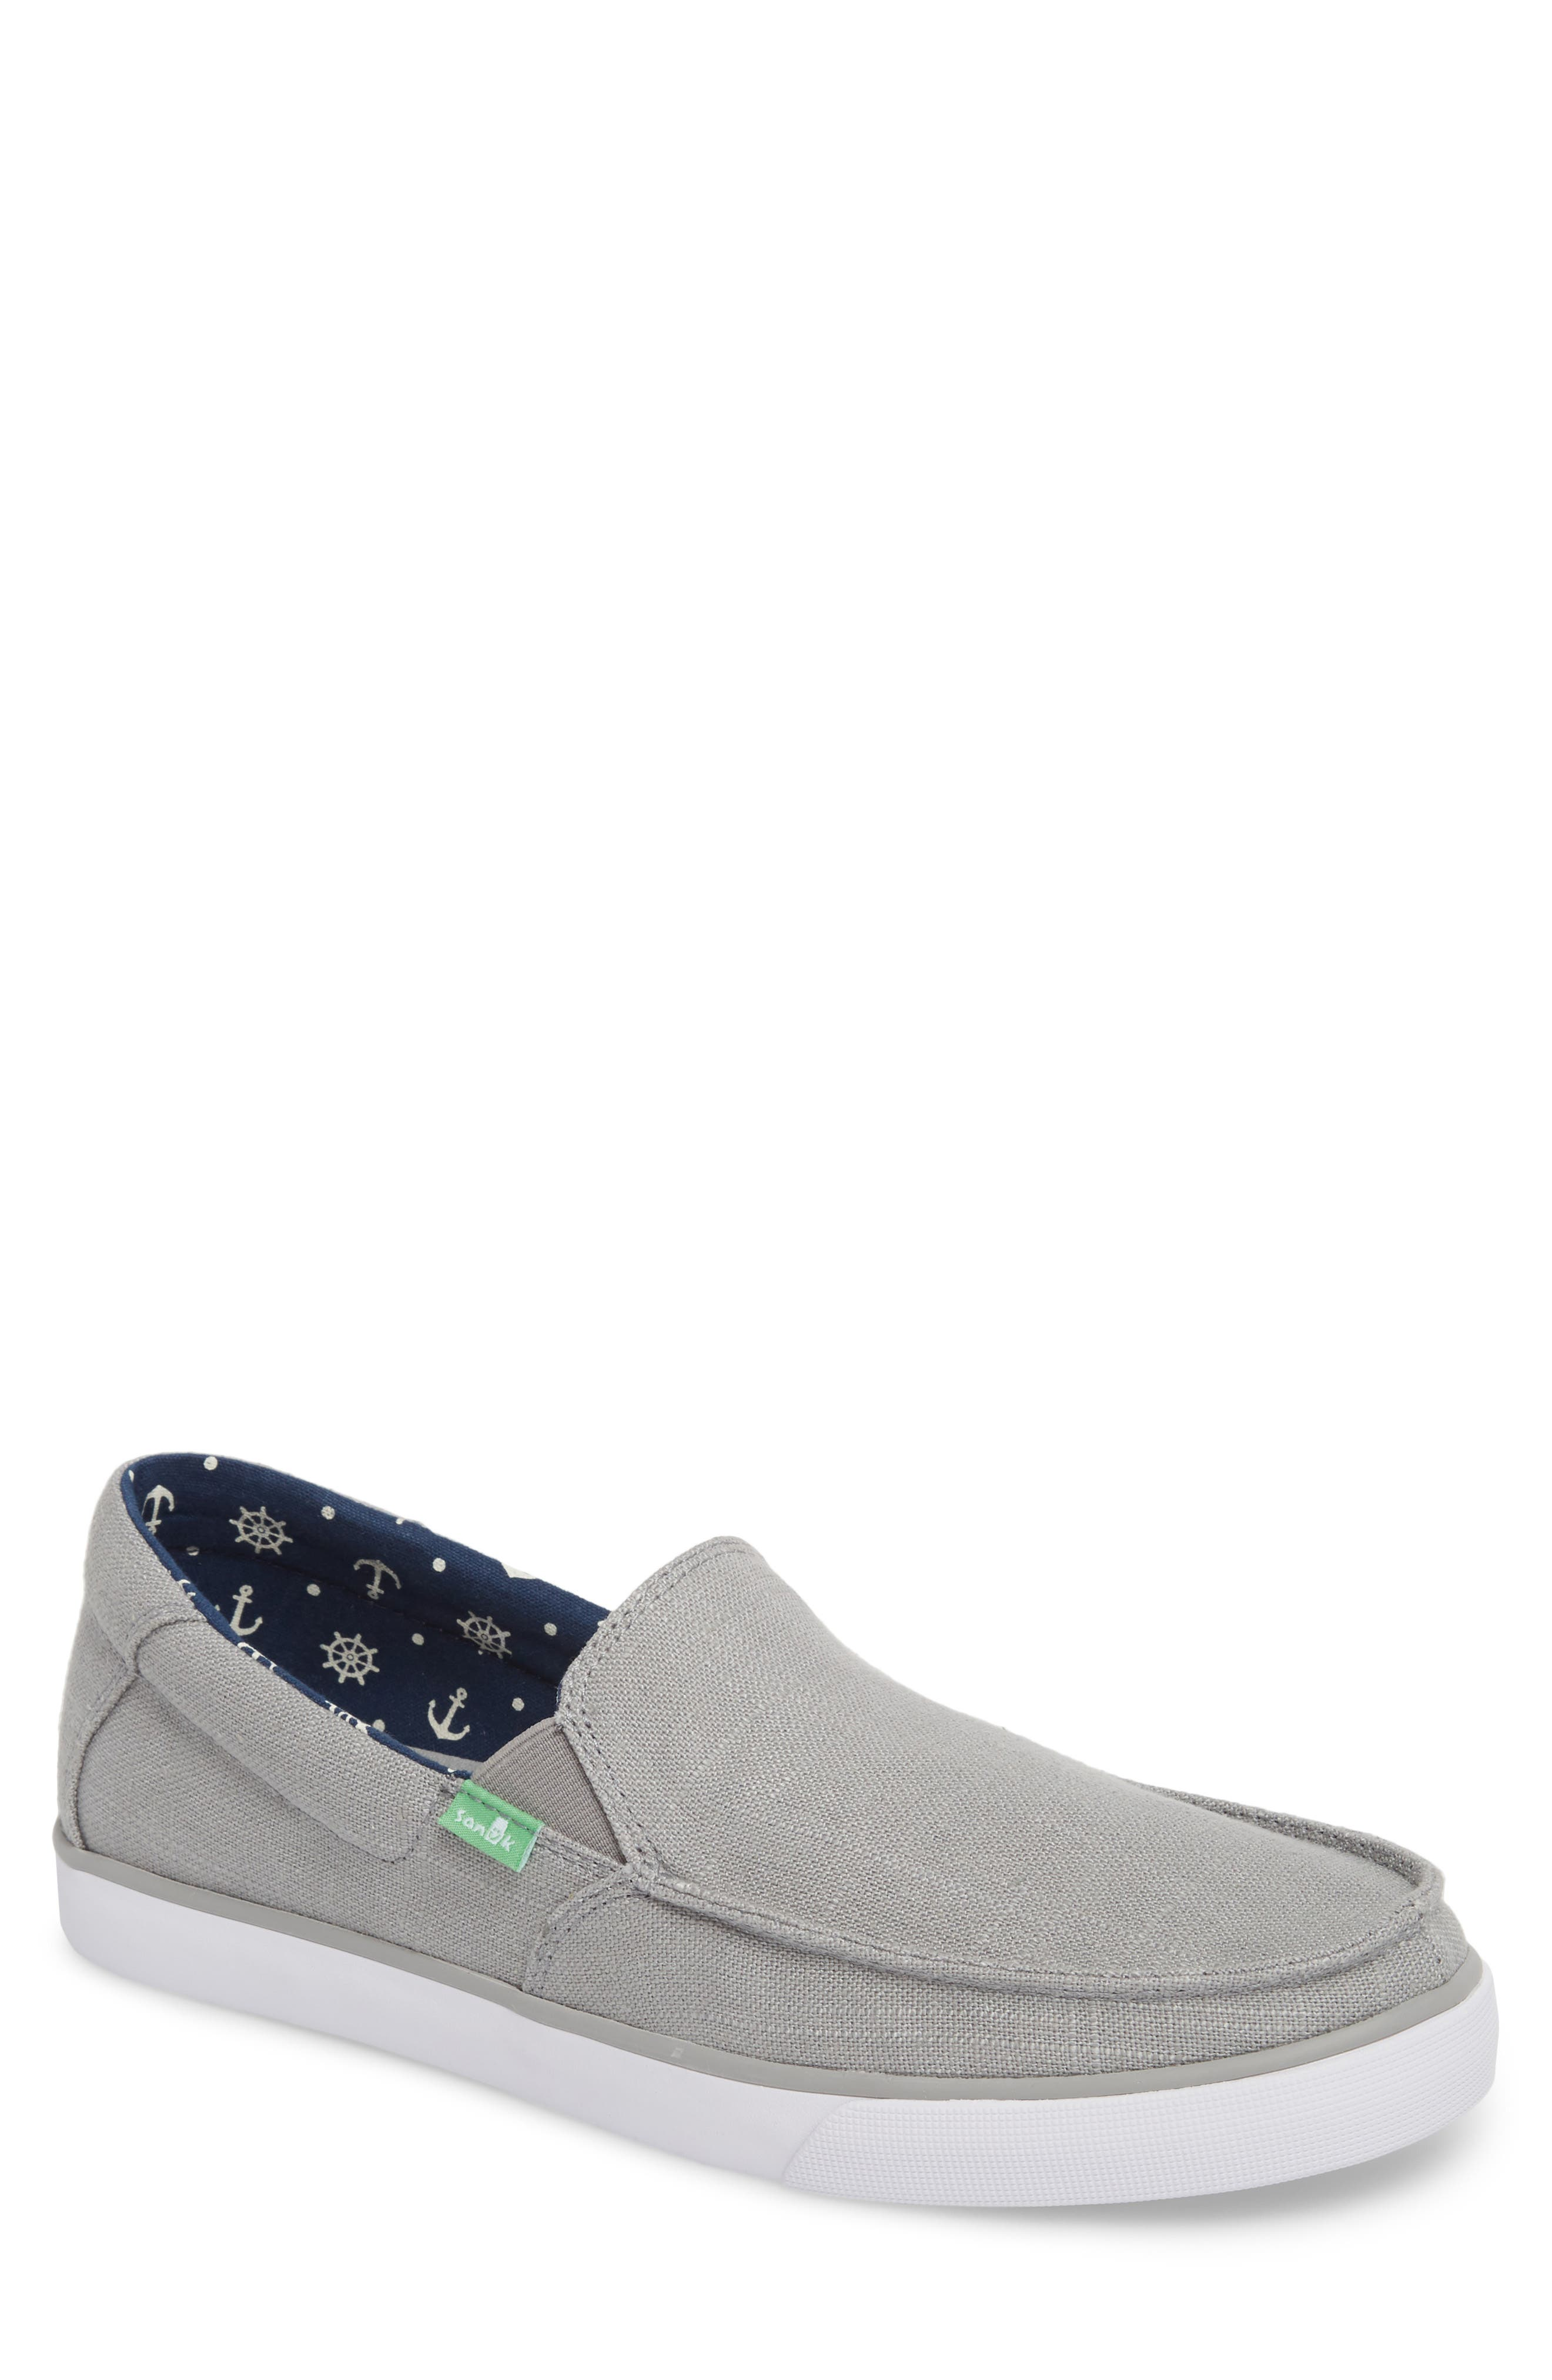 Sideline Linen Slip-On,                             Main thumbnail 1, color,                             Grey